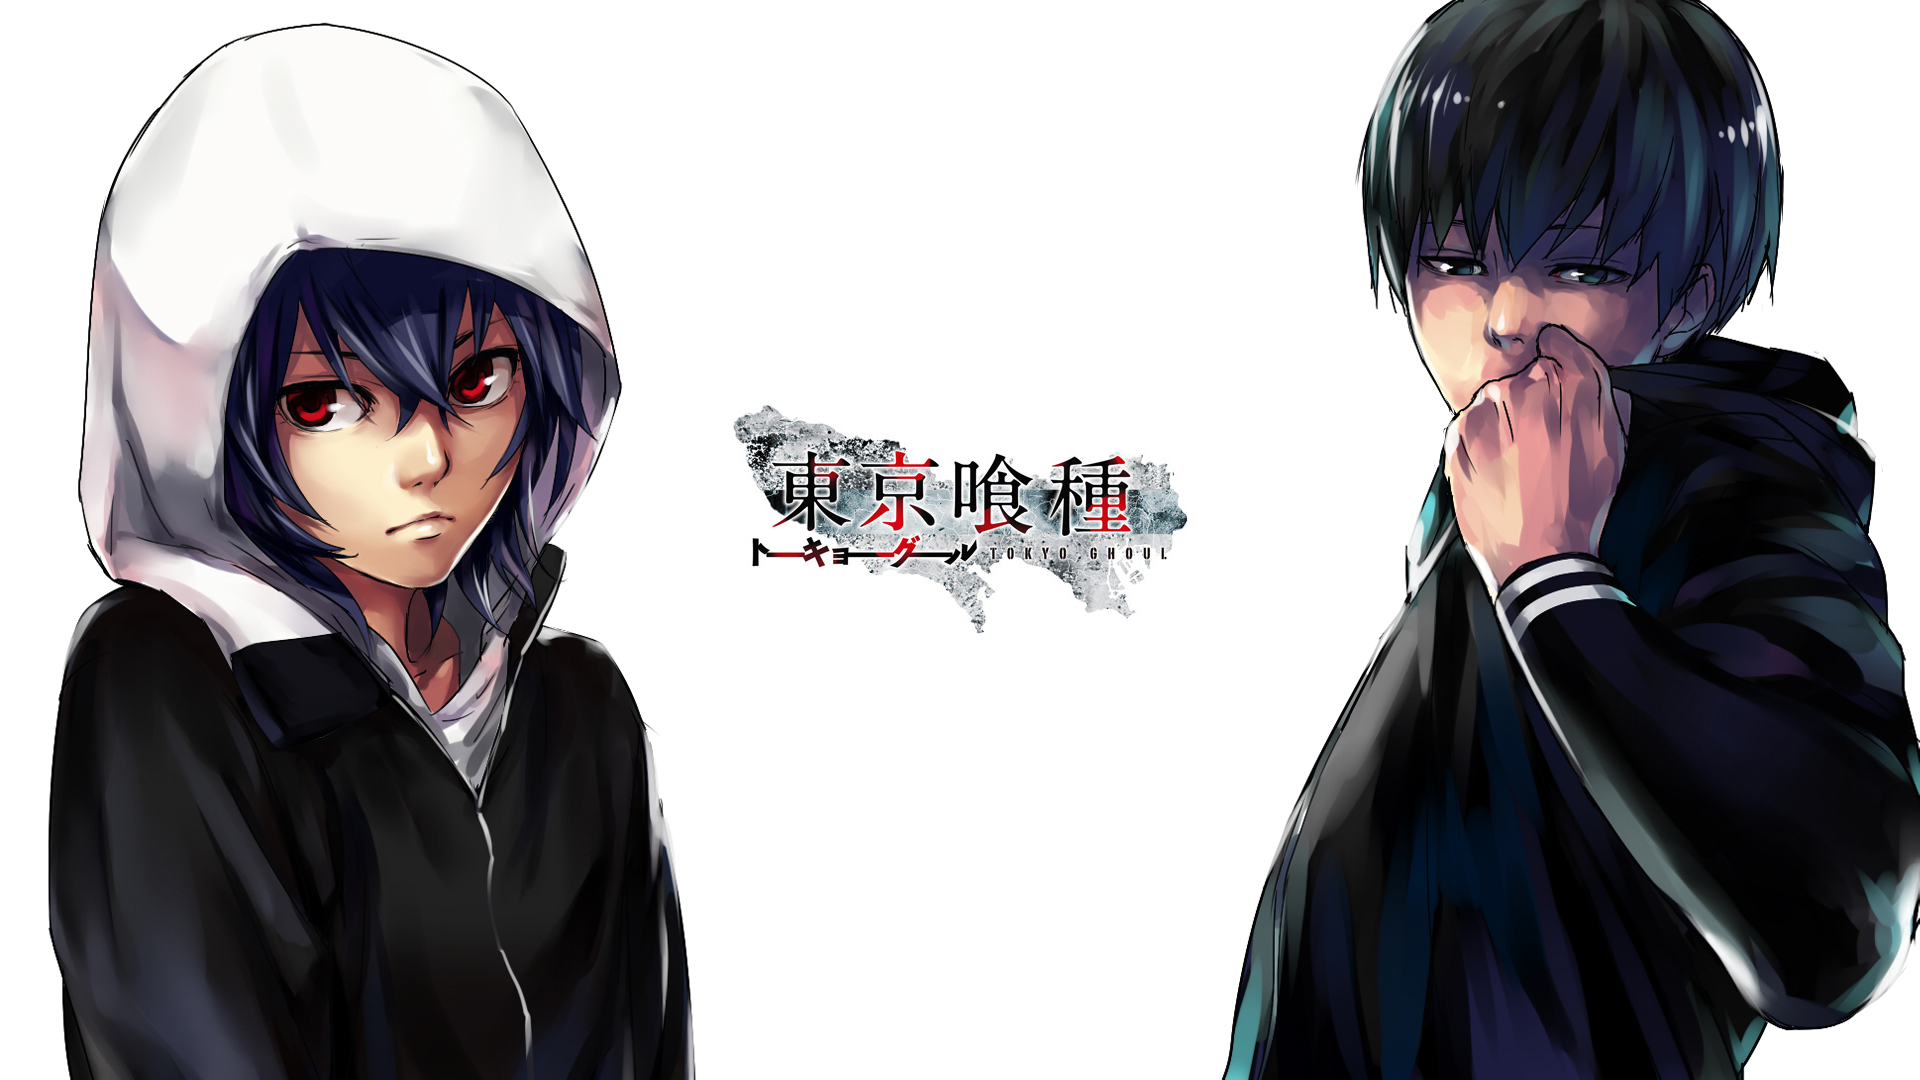 Wallpaper Anime Tokyo Ghoul Uta Mobile Hd Wallpapers 887 Hd